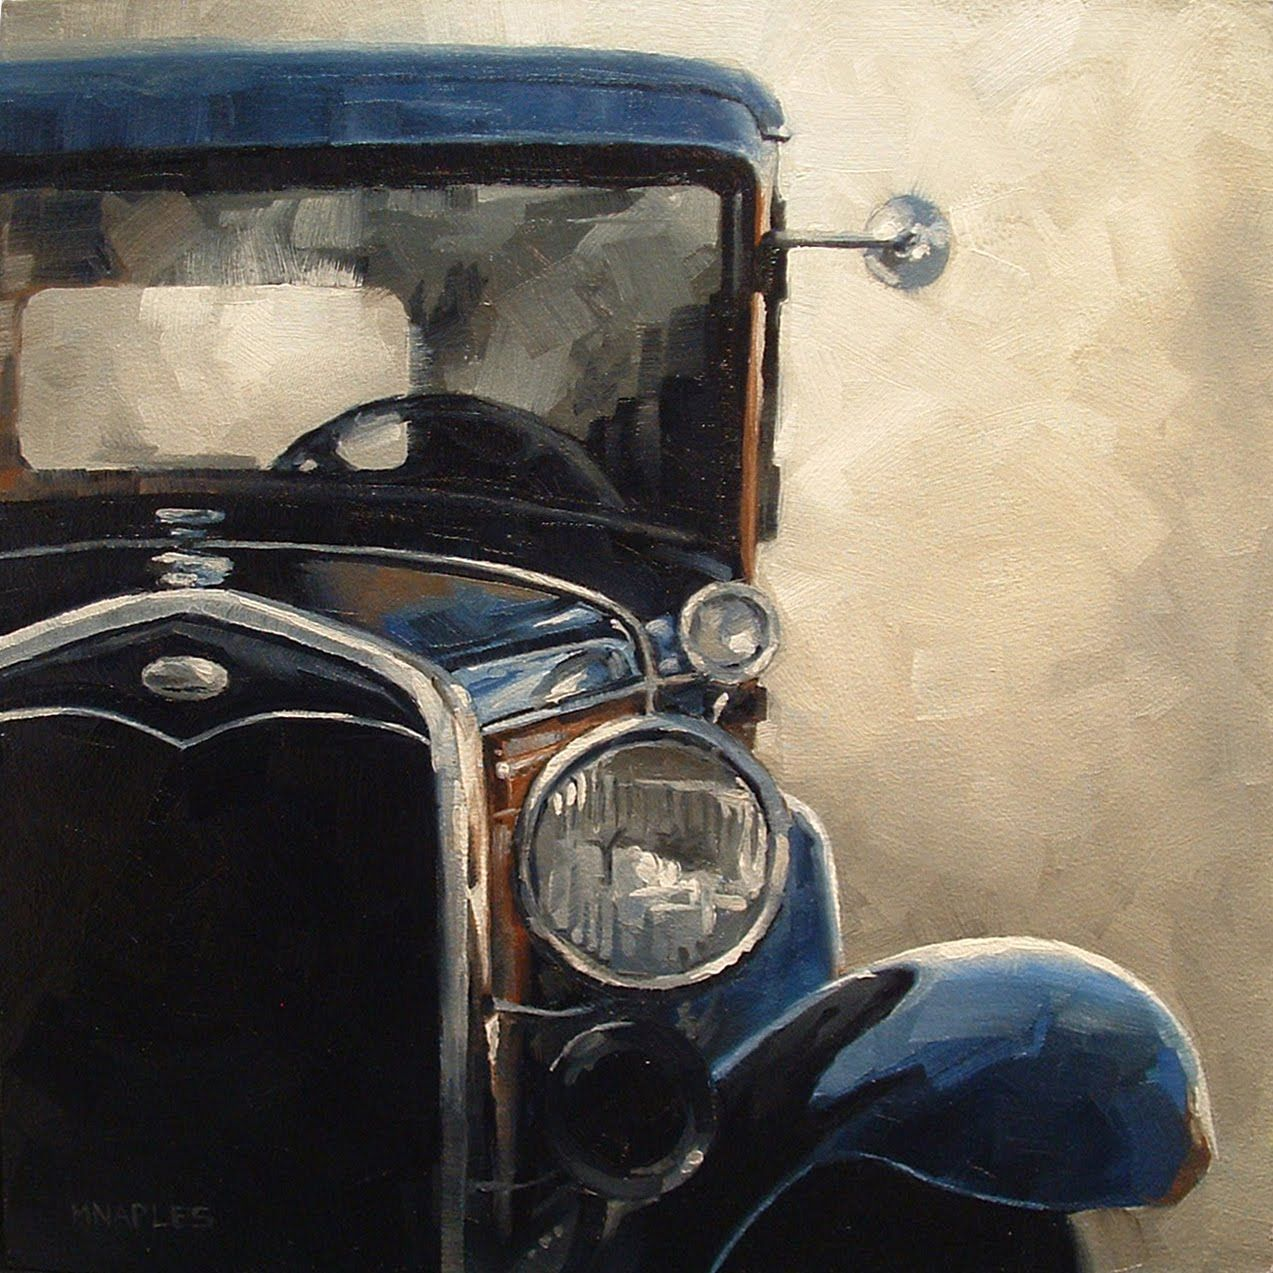 love the work of michael naples especially the old cars looks like a car